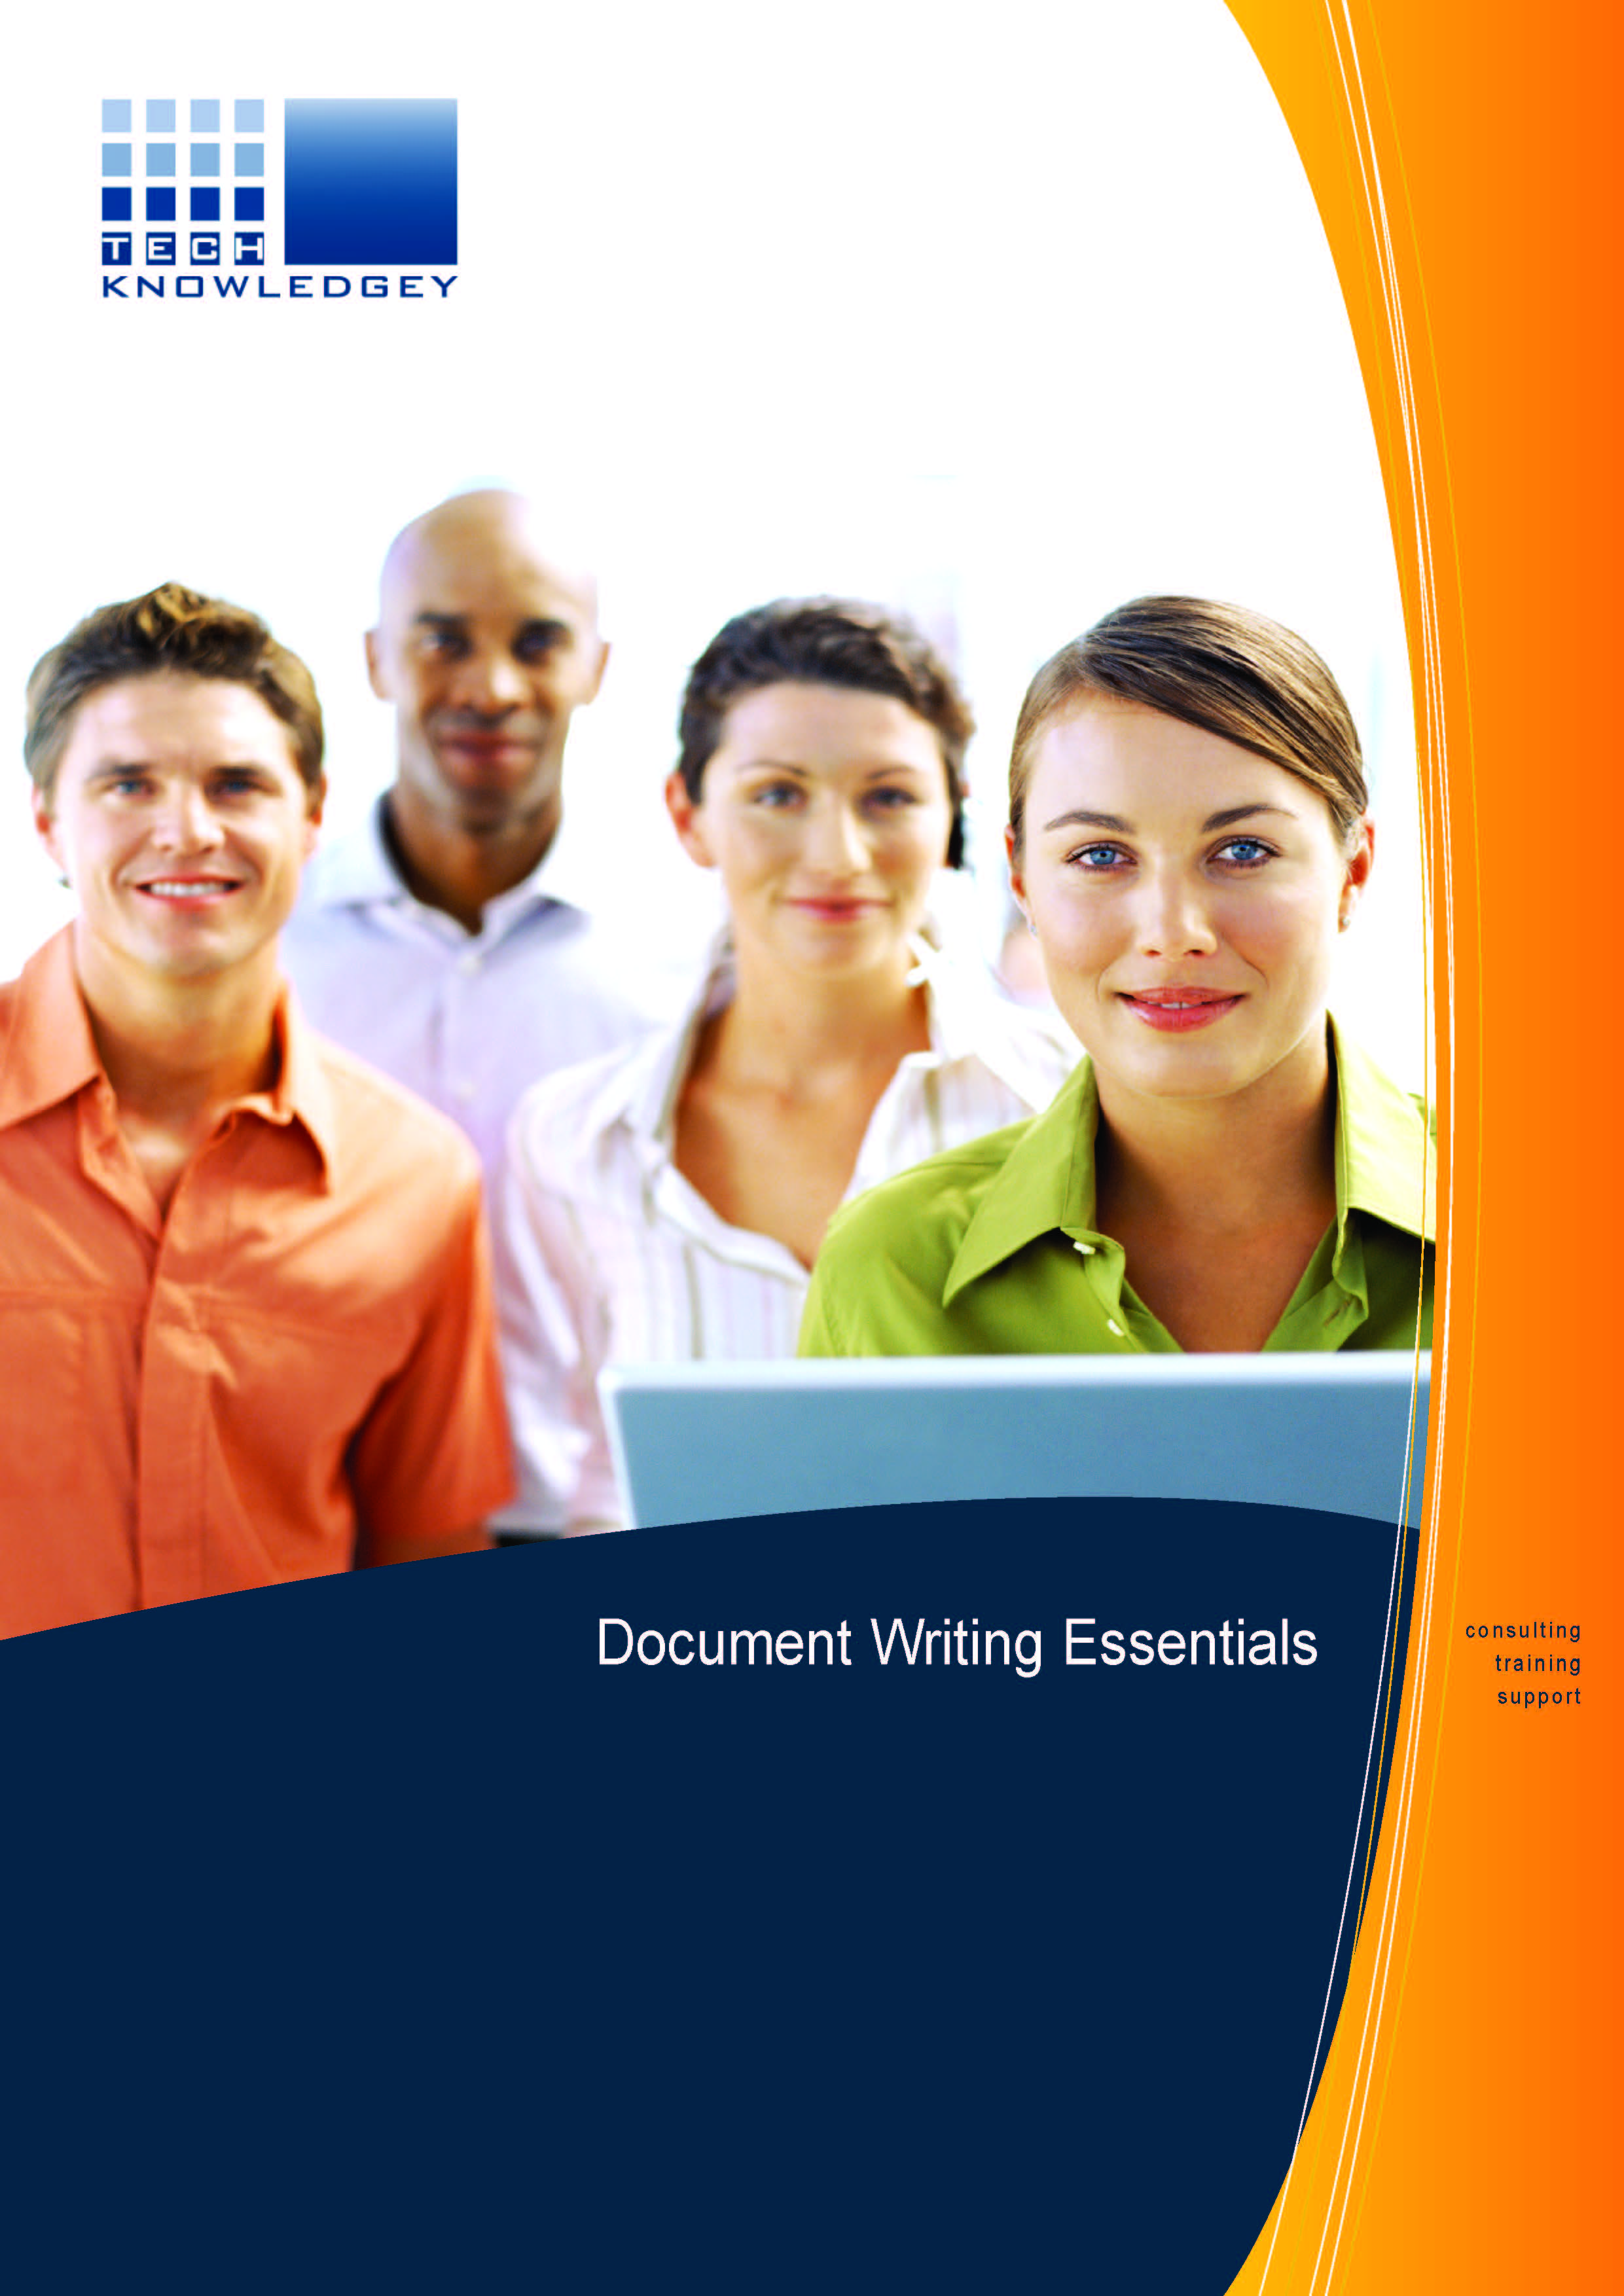 Document Writing Essentials Courseware